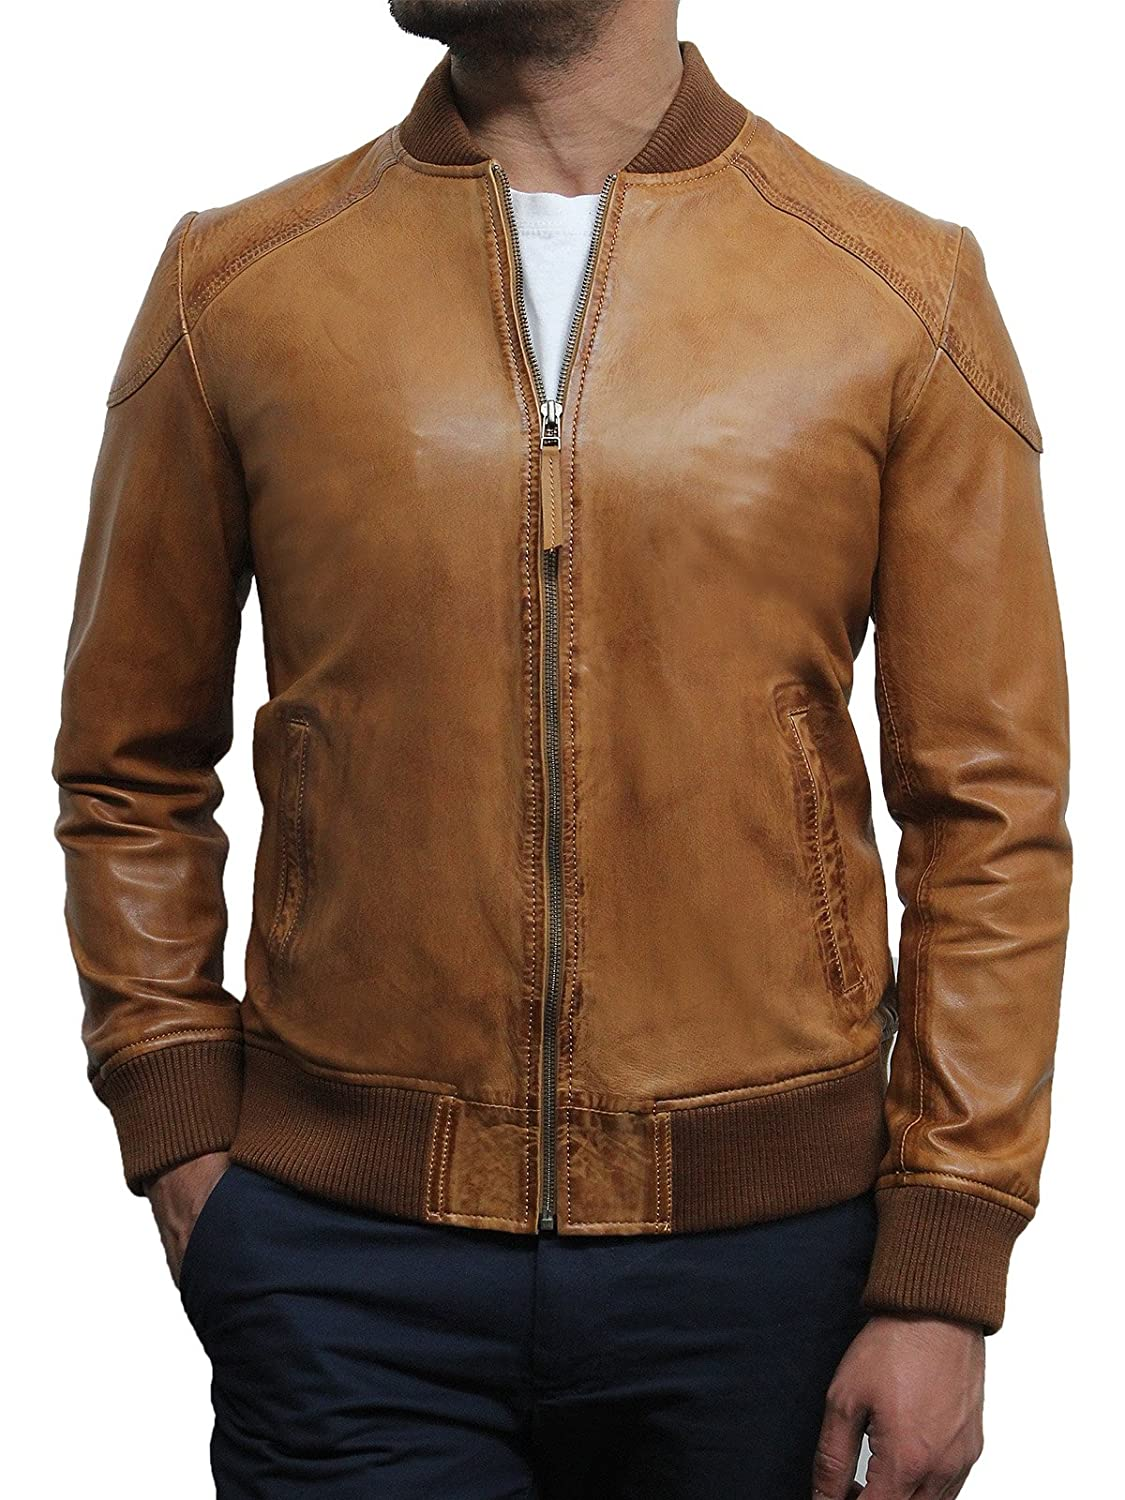 Mens Lamb Skin Tan Varsity Leather Jacket Designer Style